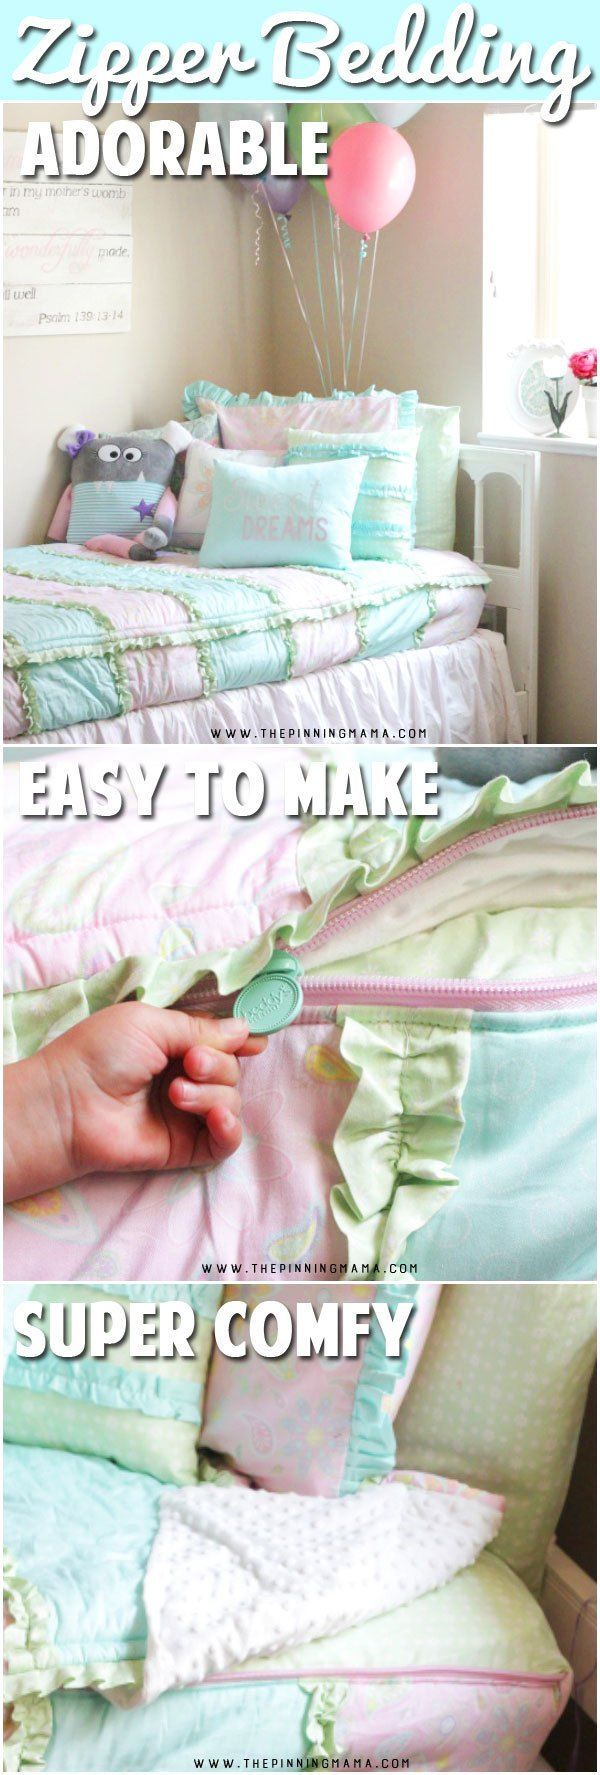 The SECRET to Kids Perfectly Making the Bed Every Day! • The Pinning Mama